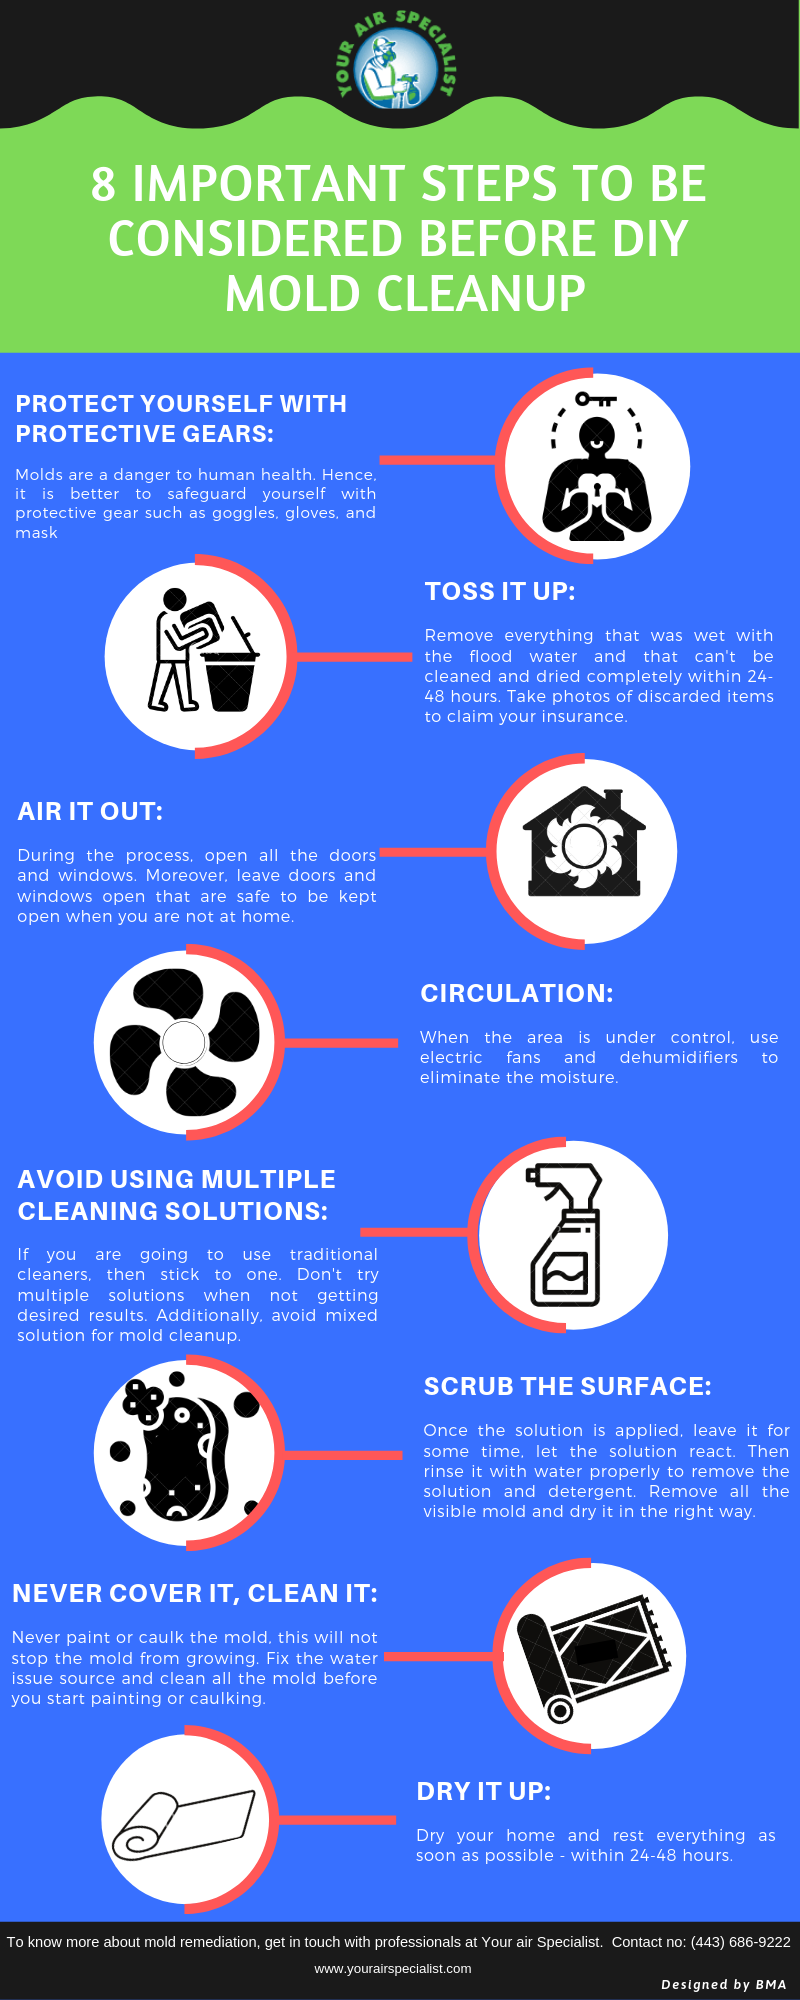 8 Important Steps To Consider Before DIY Mold Cleanup